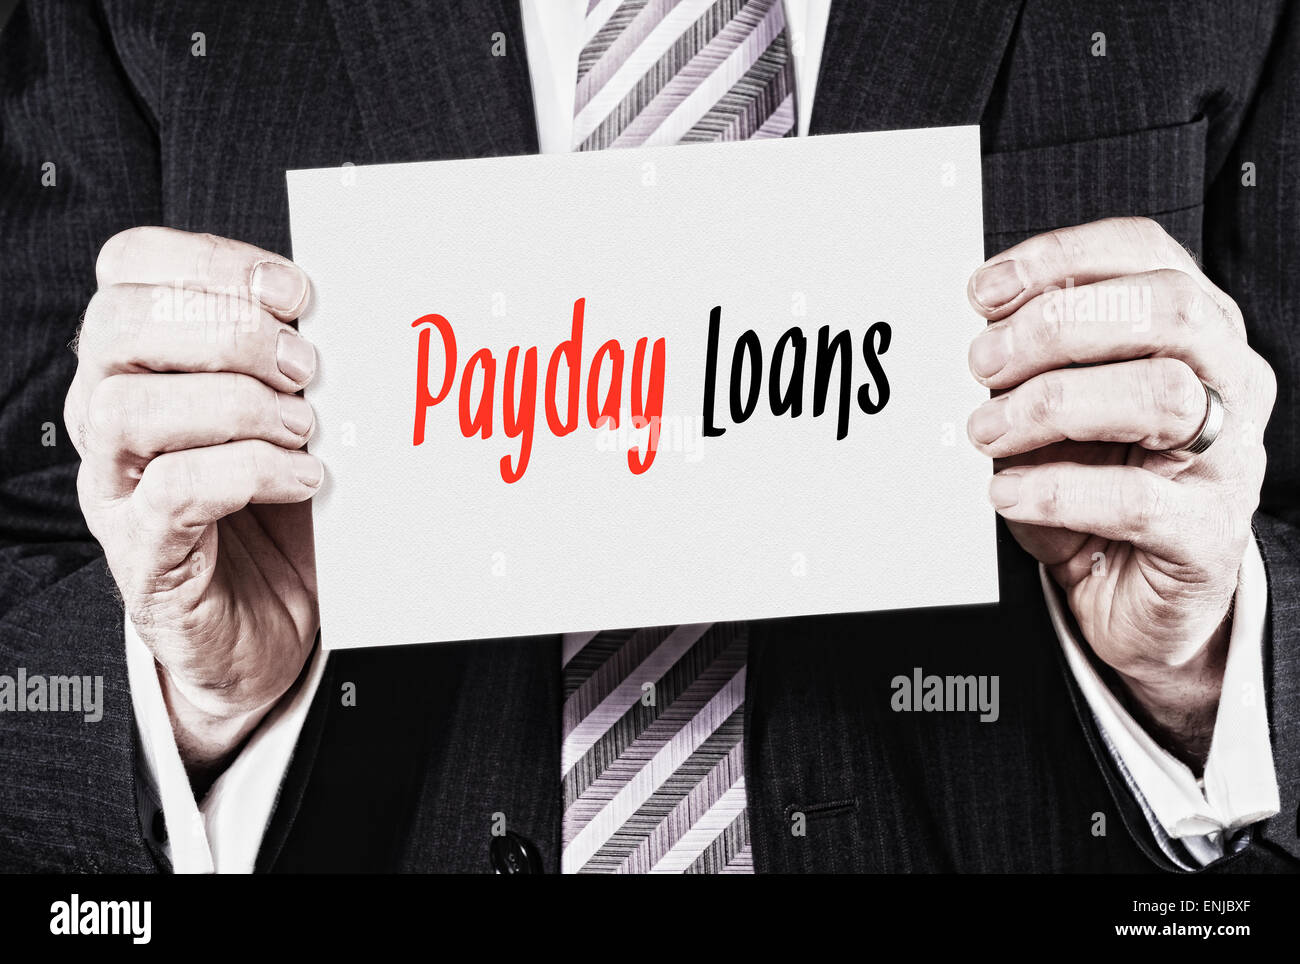 A businessman holding a business card with the words, Payday Loans, written on it. - Stock Image